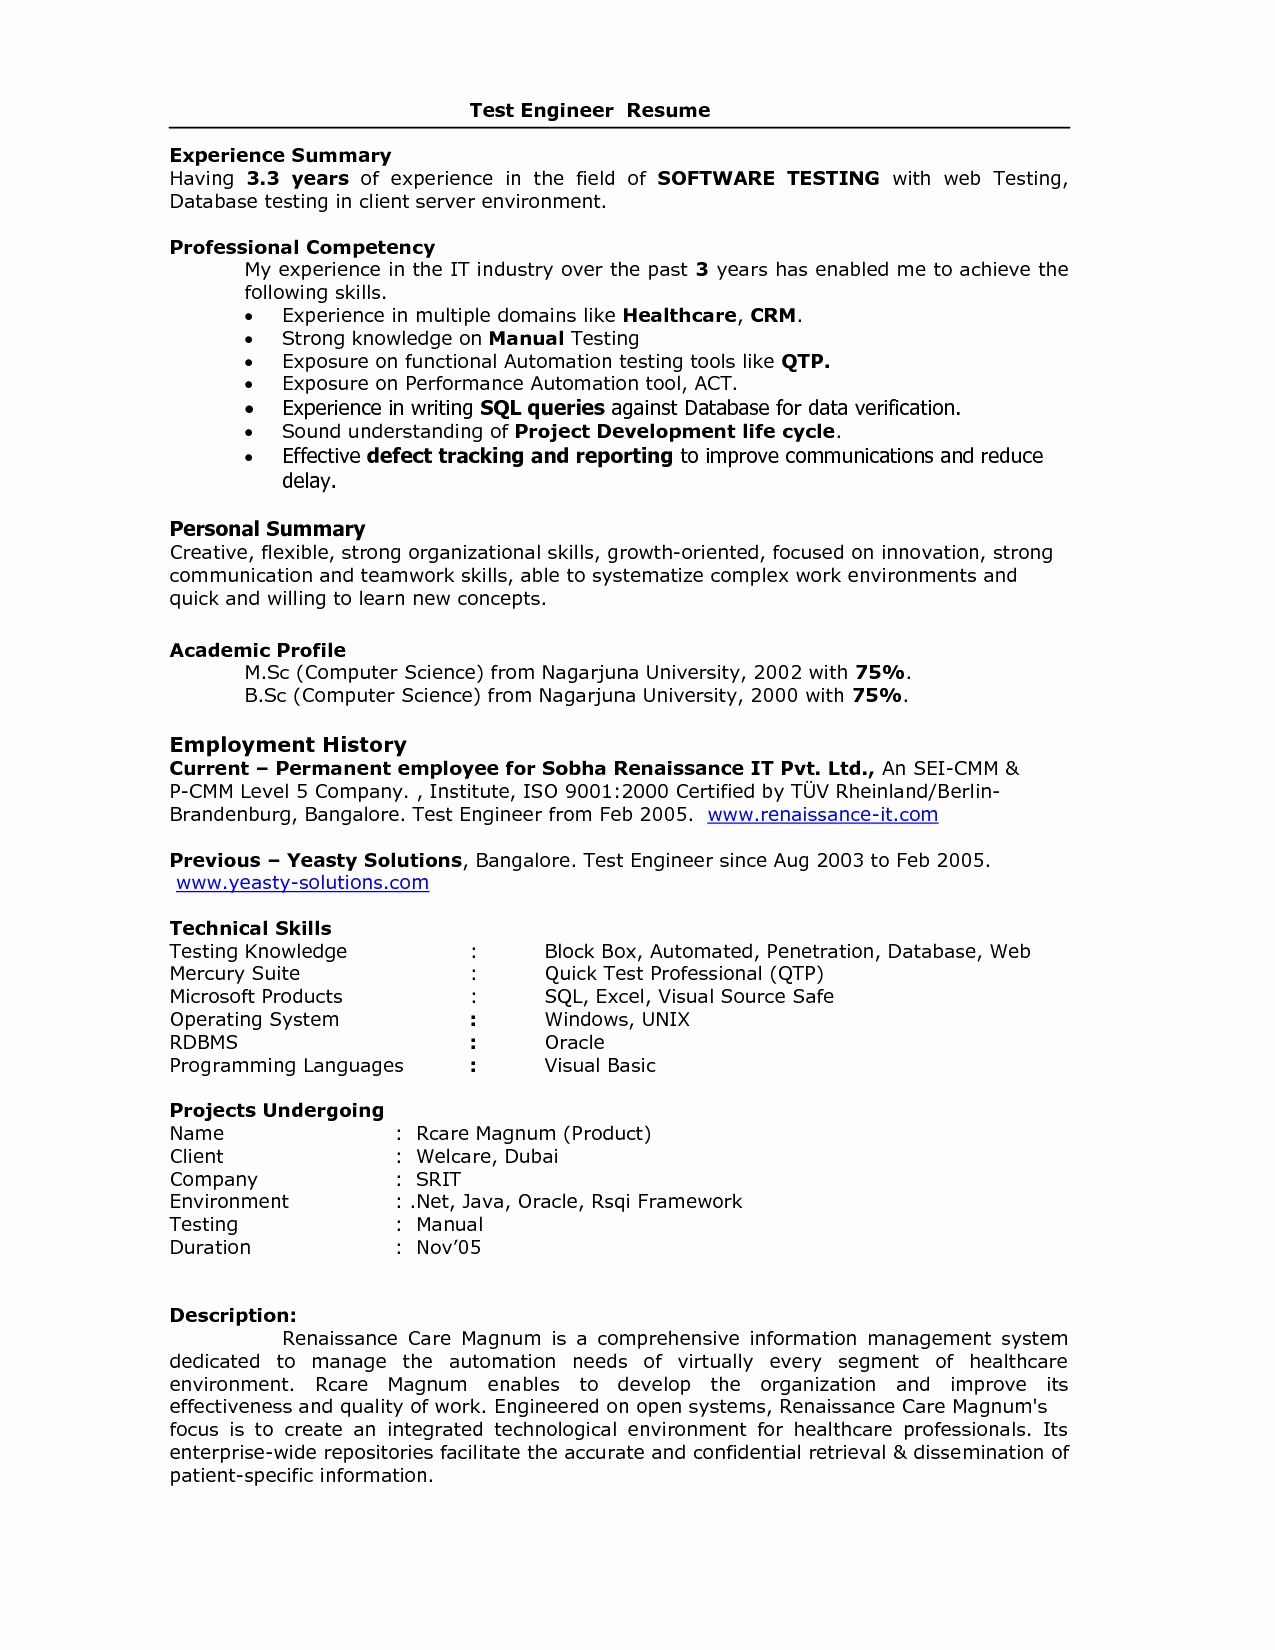 Sample Experienced Resume Software Engineer Resume Format For 5 Years Experience In Testing Experience